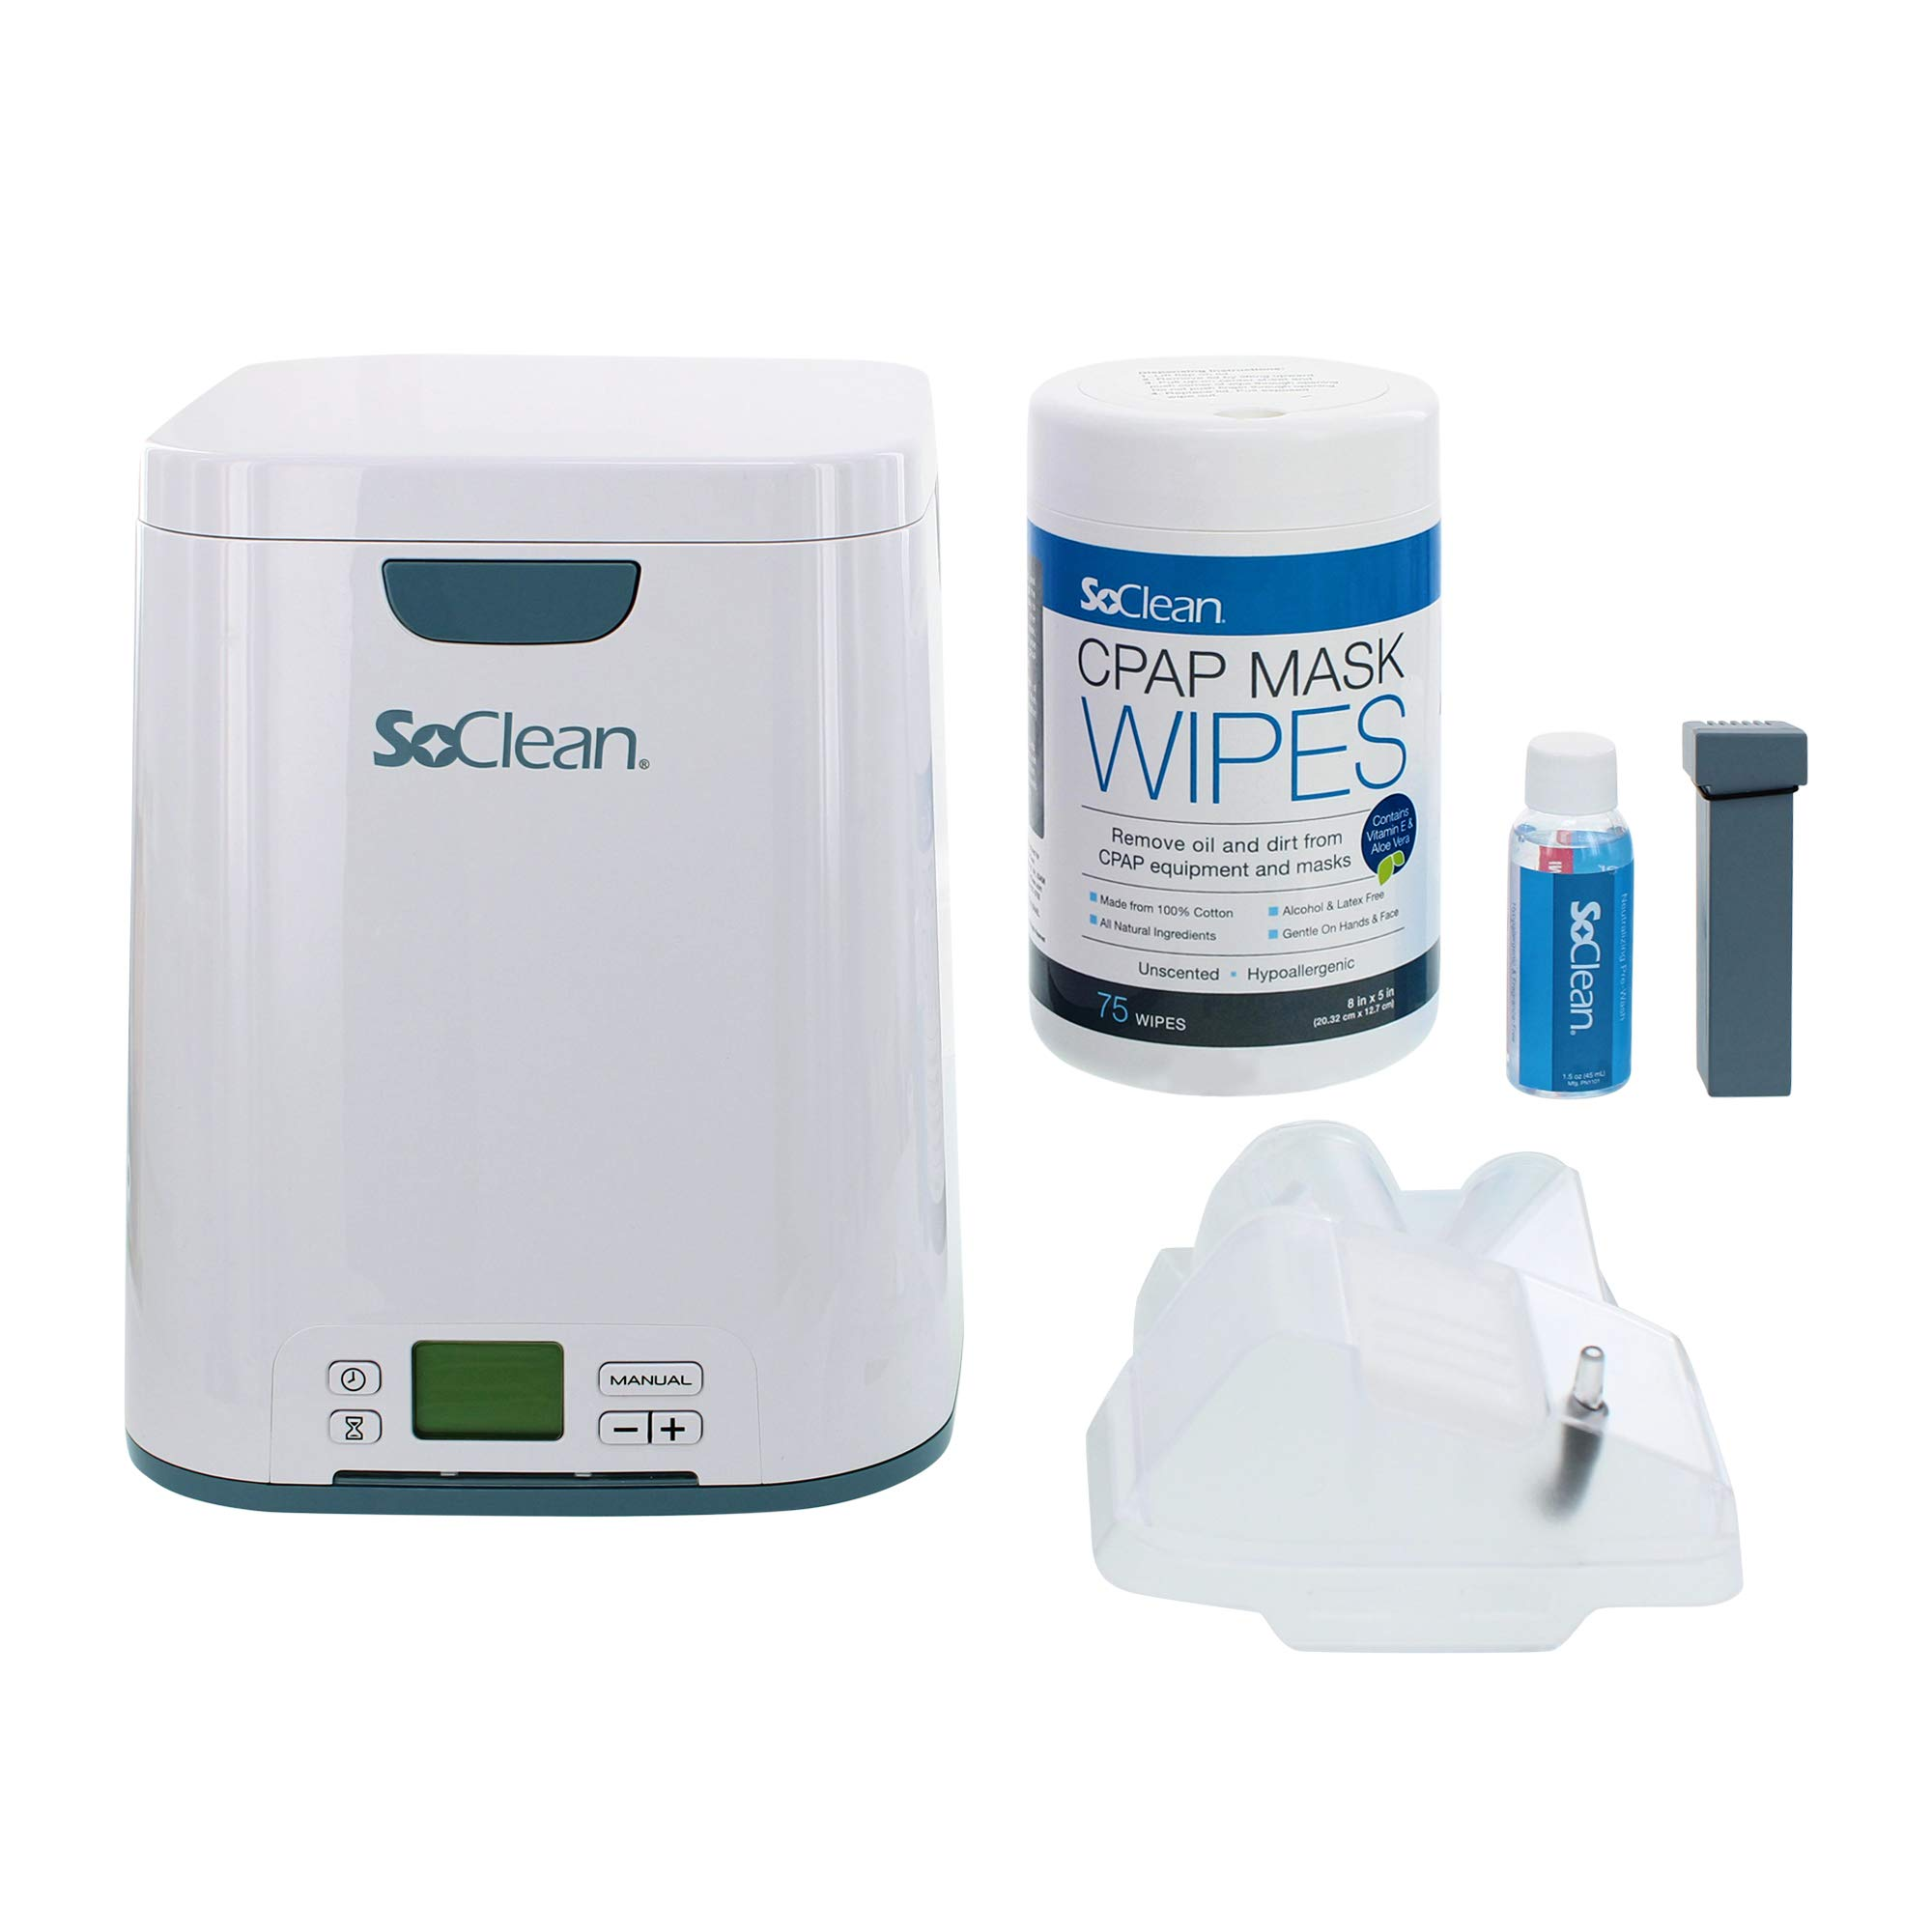 SoClean 2 CPAP Cleaner and Sanitizing Machine with AirSense 10 Adapter, CPAP Filters, CPAP Hose, and Mask Wipes